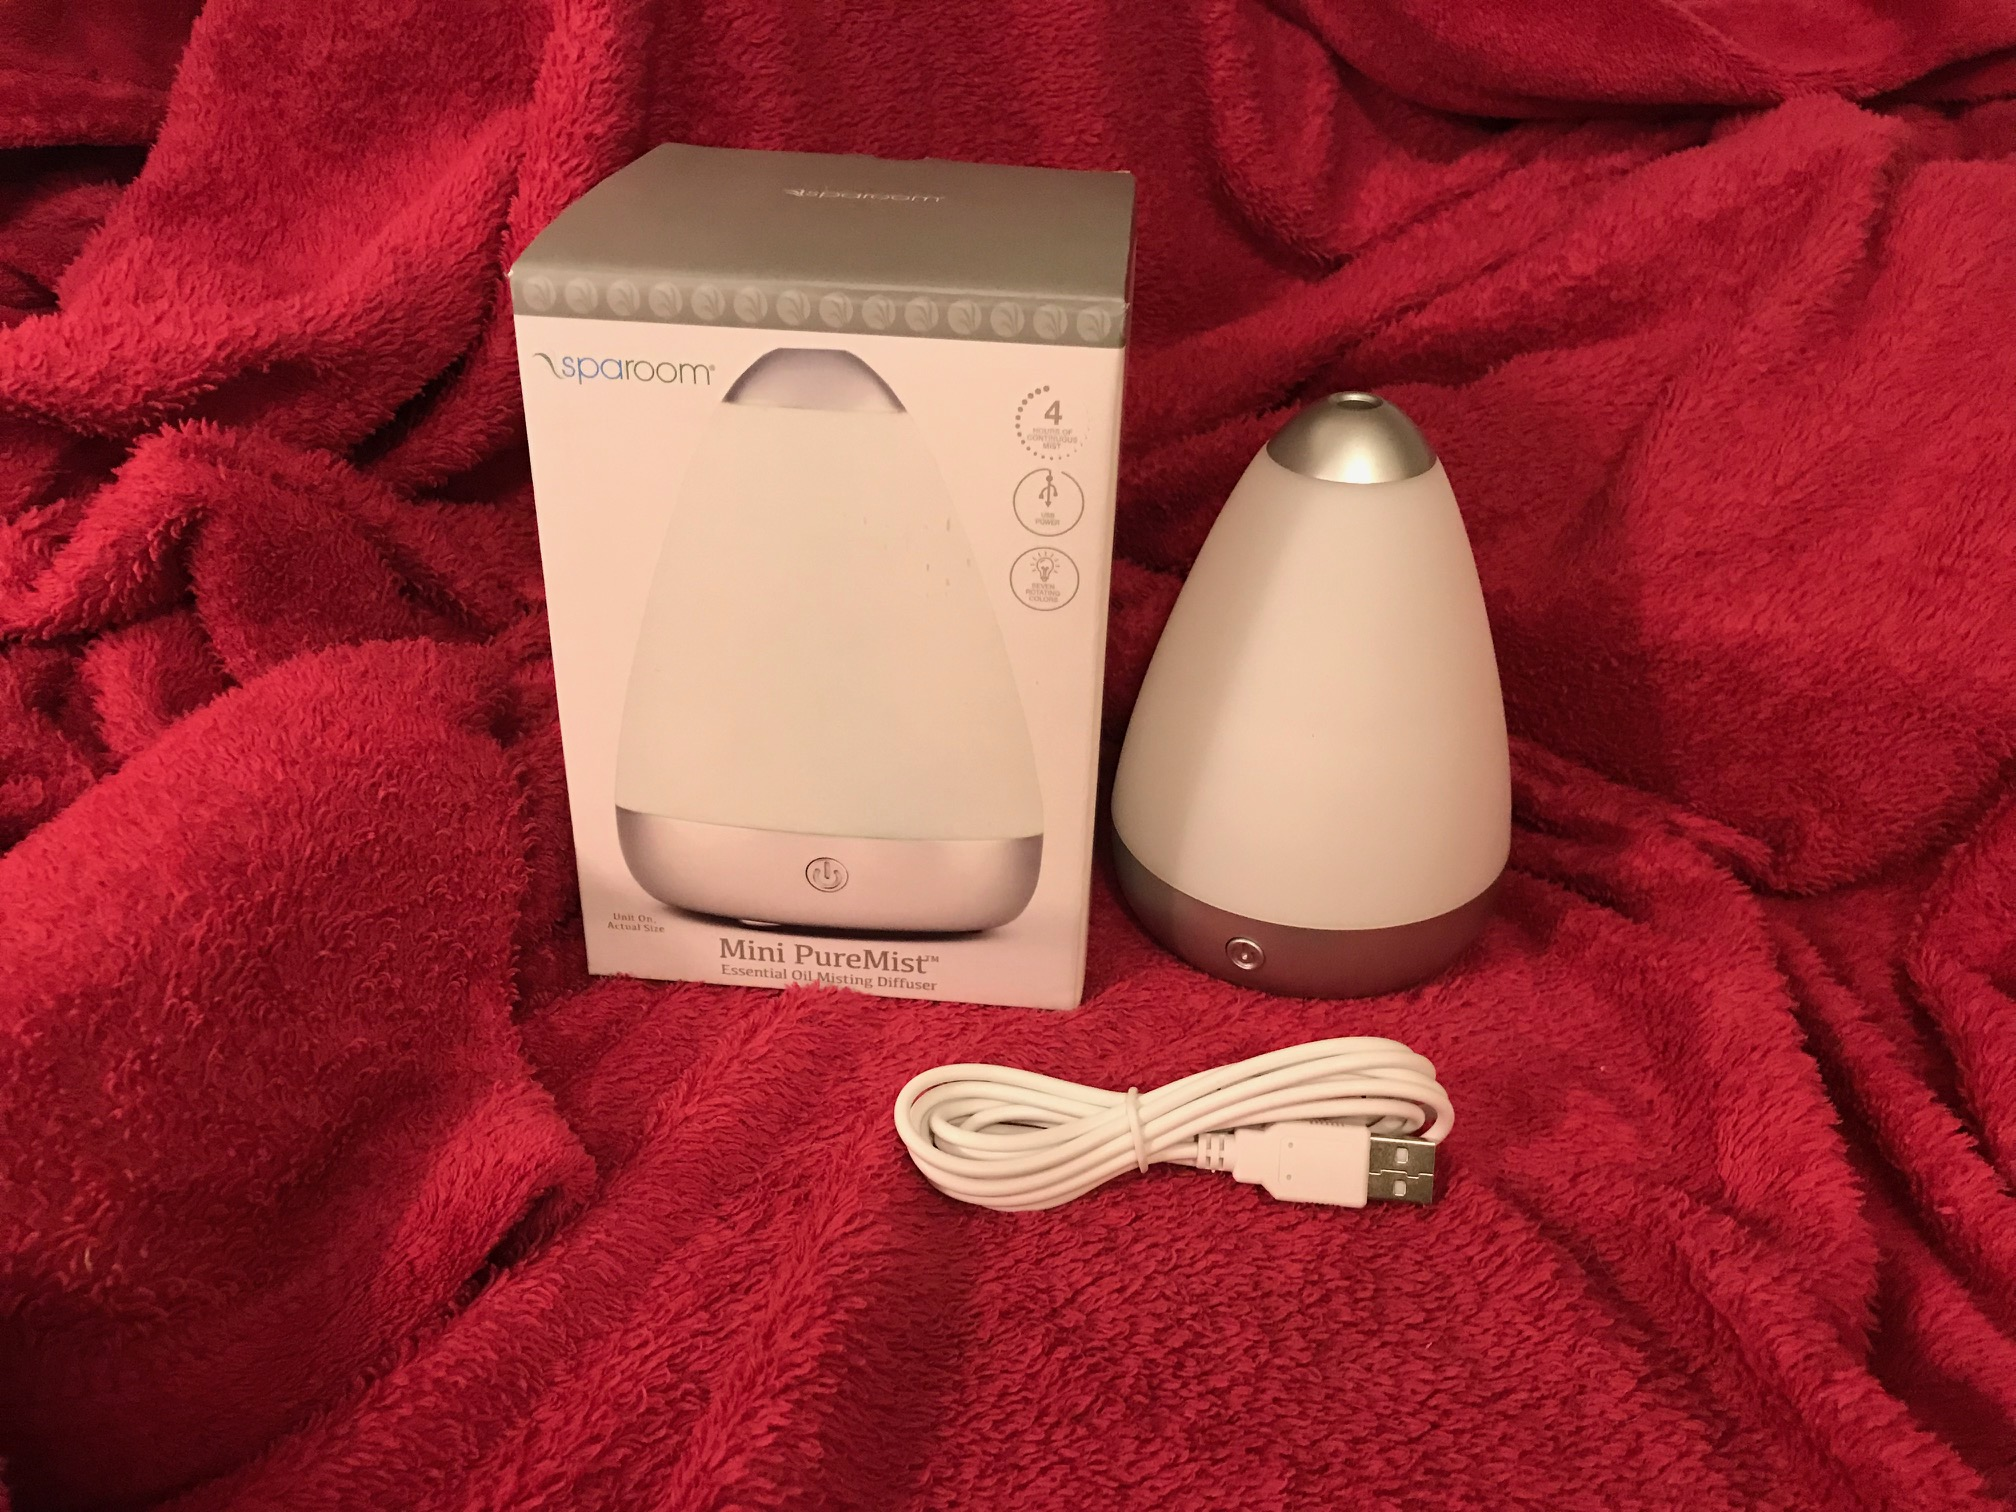 Sparoom Mini PureMist Essential Oil Diffuser, New In Box (2018) from Target: Lead Free In All Accessible Components.